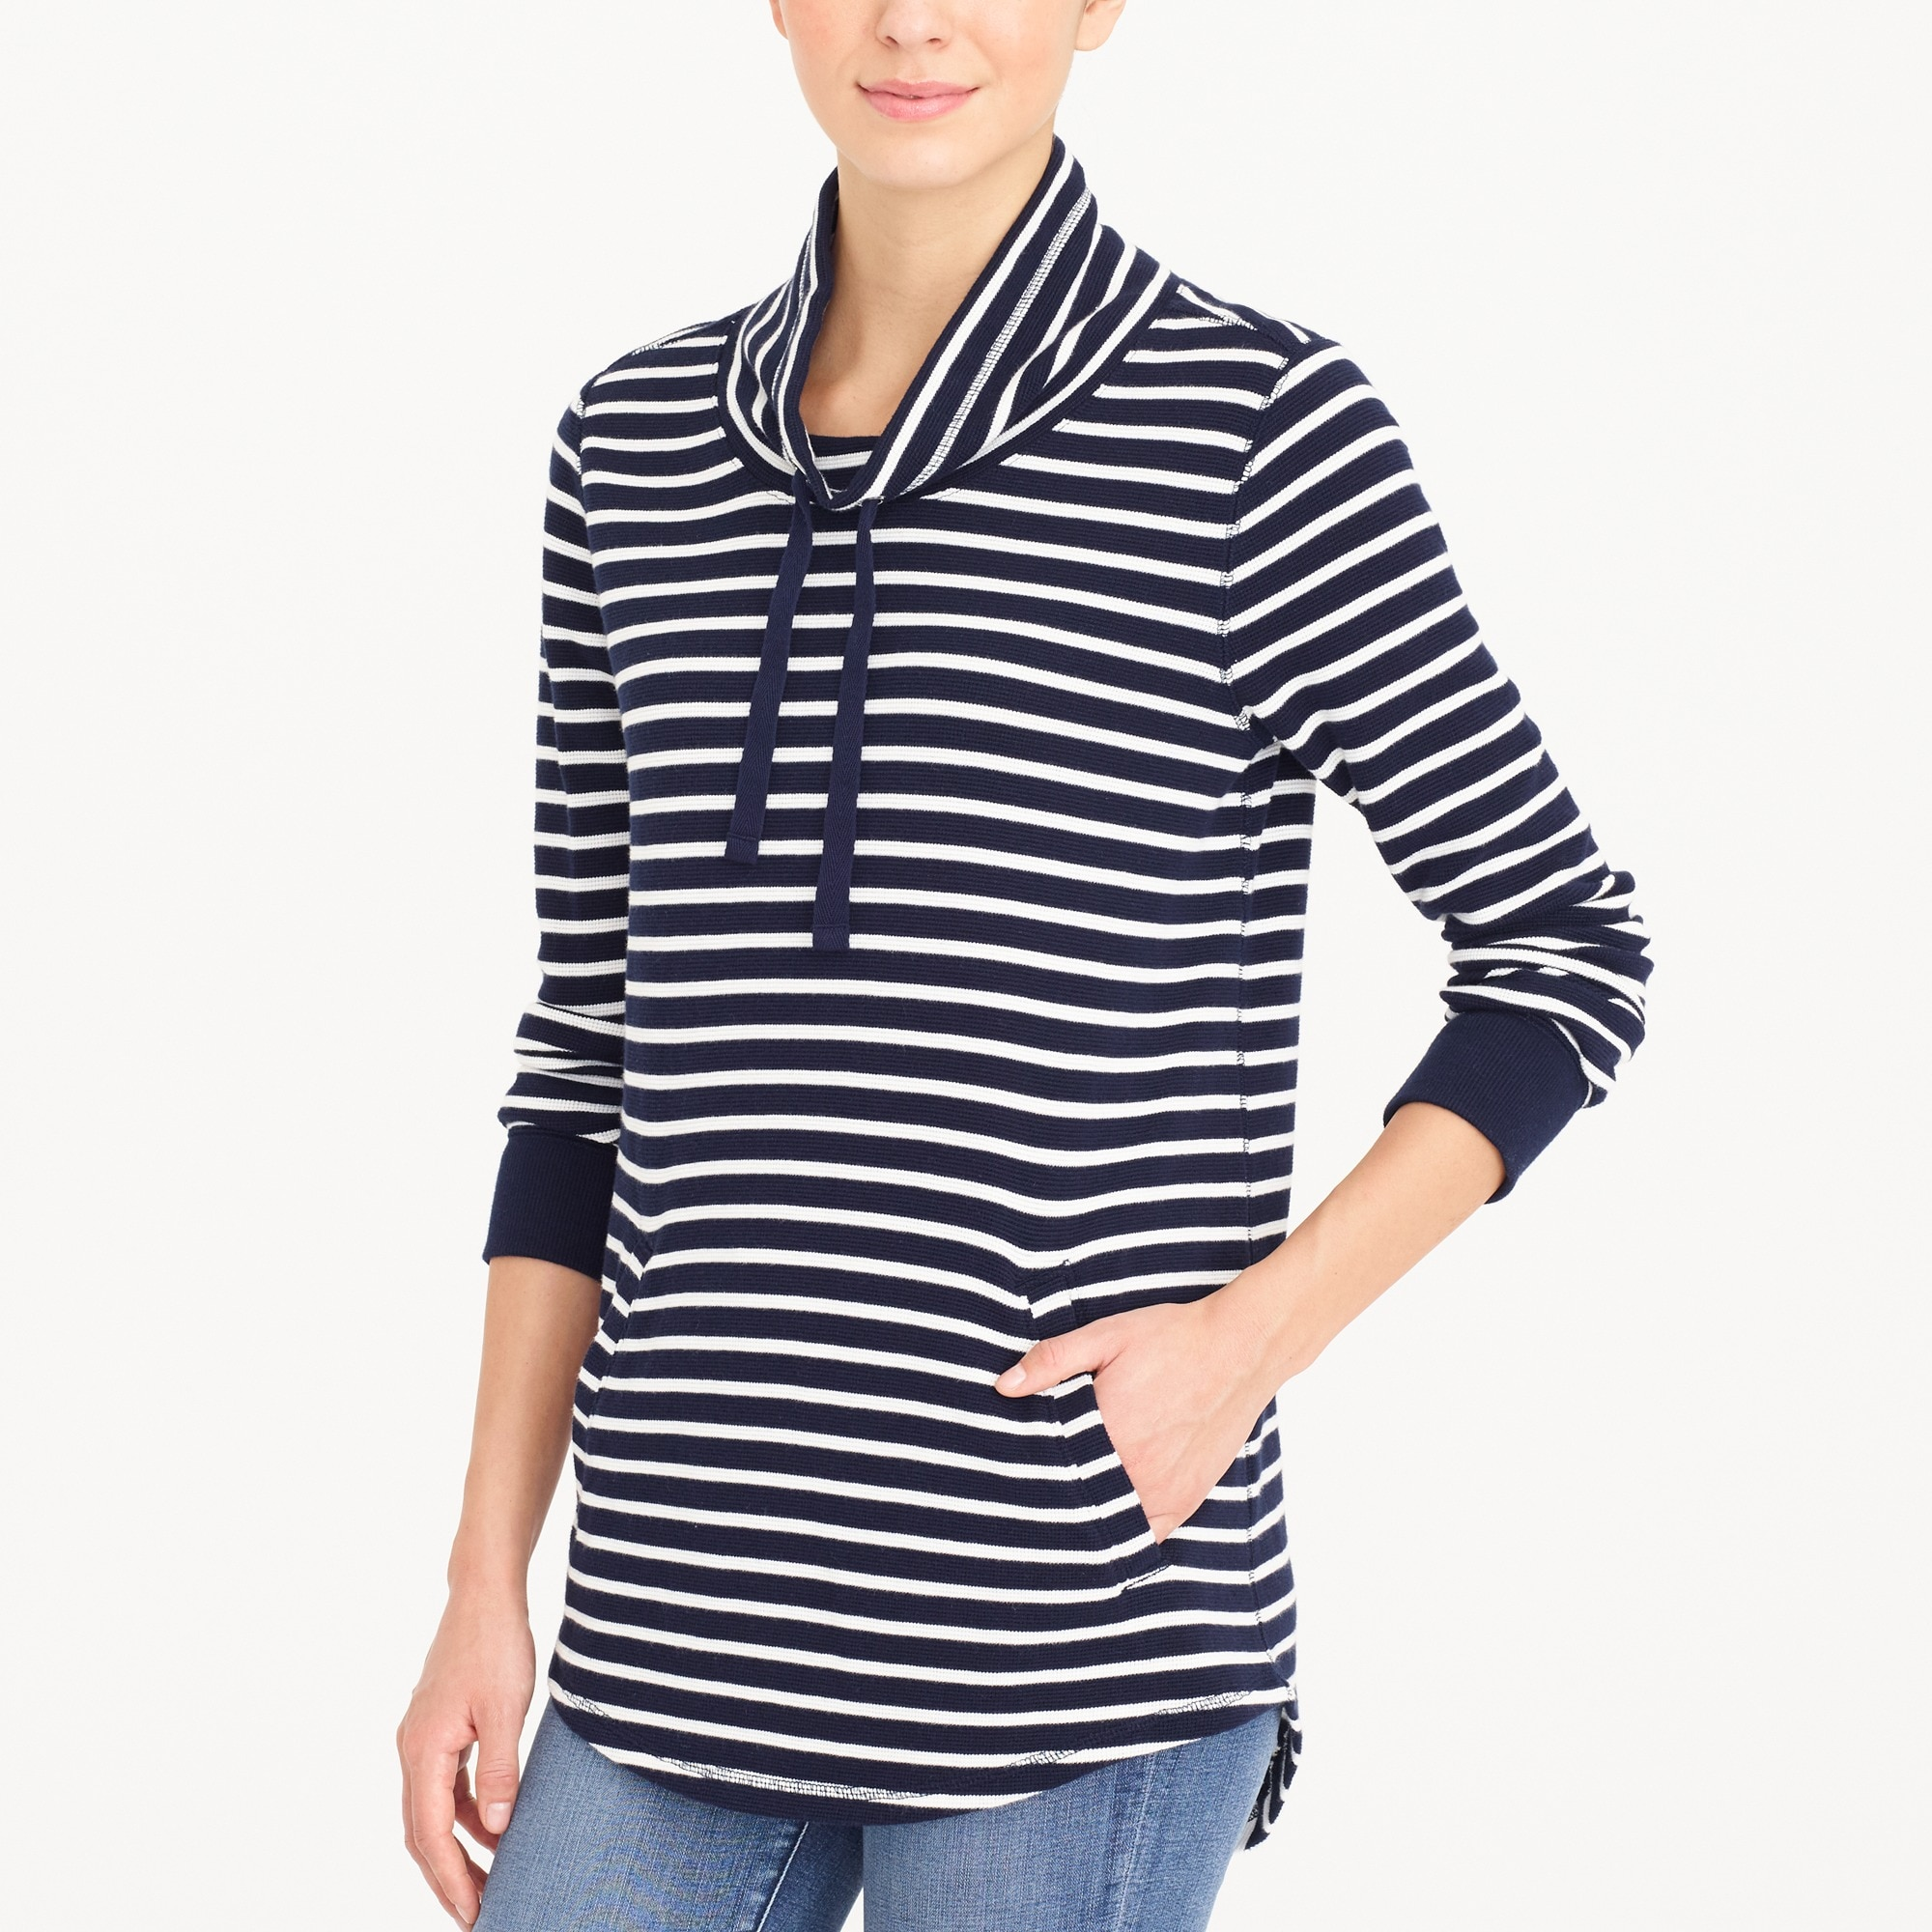 Image 1 for Striped waffle funnelneck sweatshirt